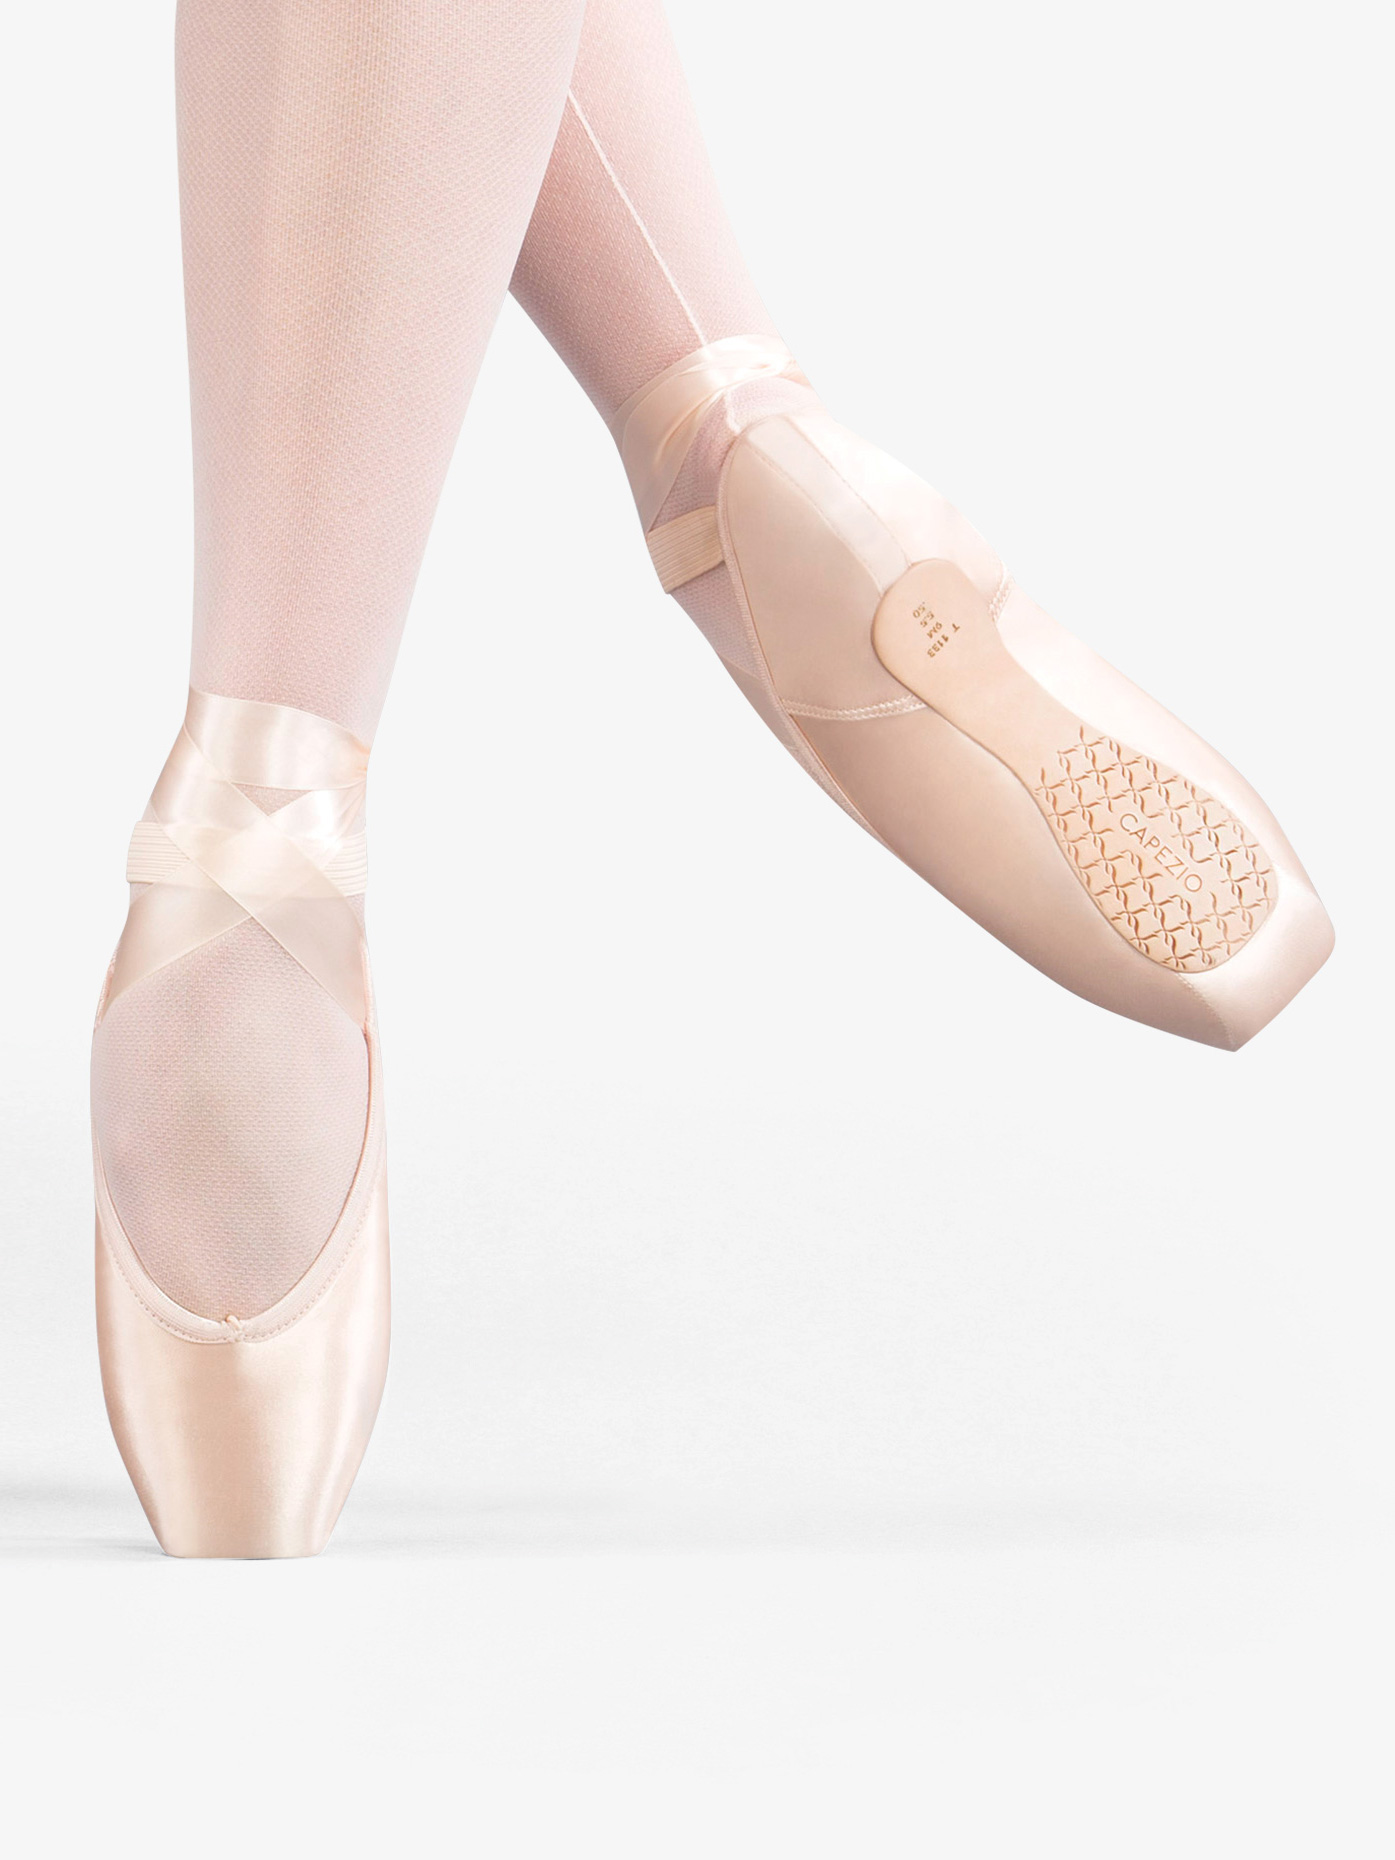 Capezio Airess Tapered Toe Pointe Shoe #5.5 Shank C1133